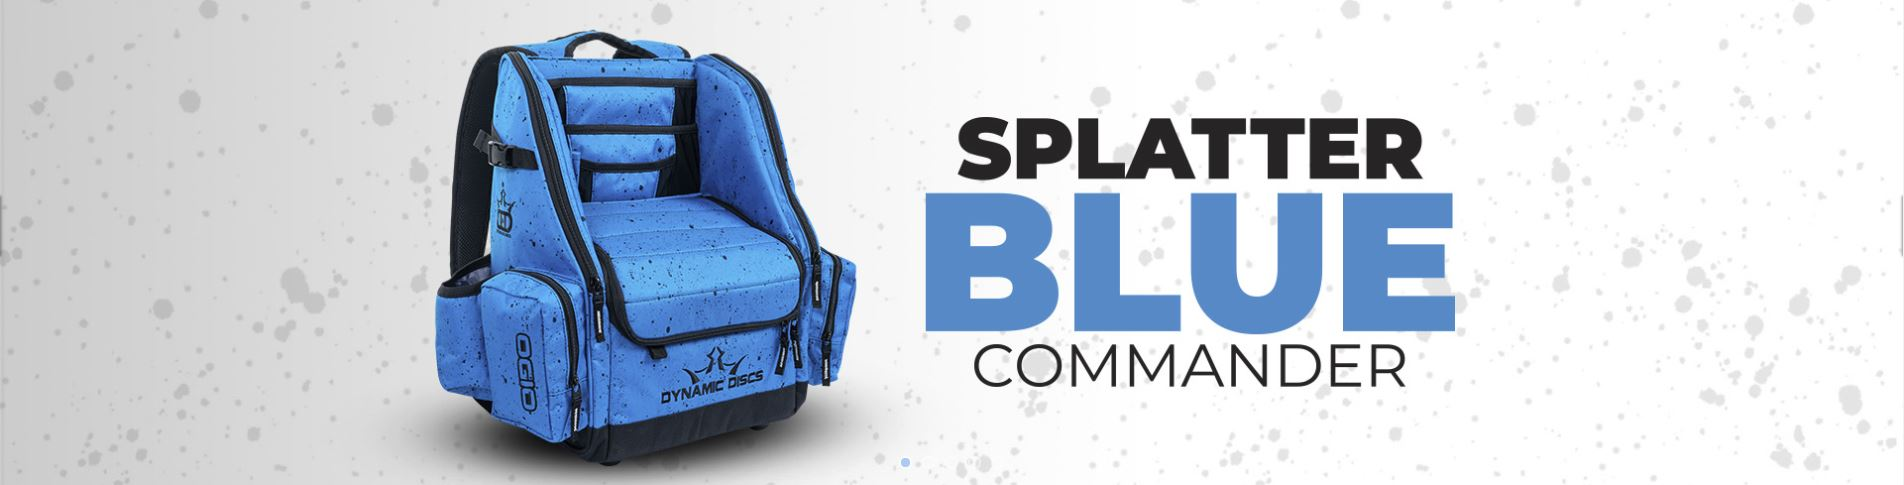 Splatter Blue Commander Backpack